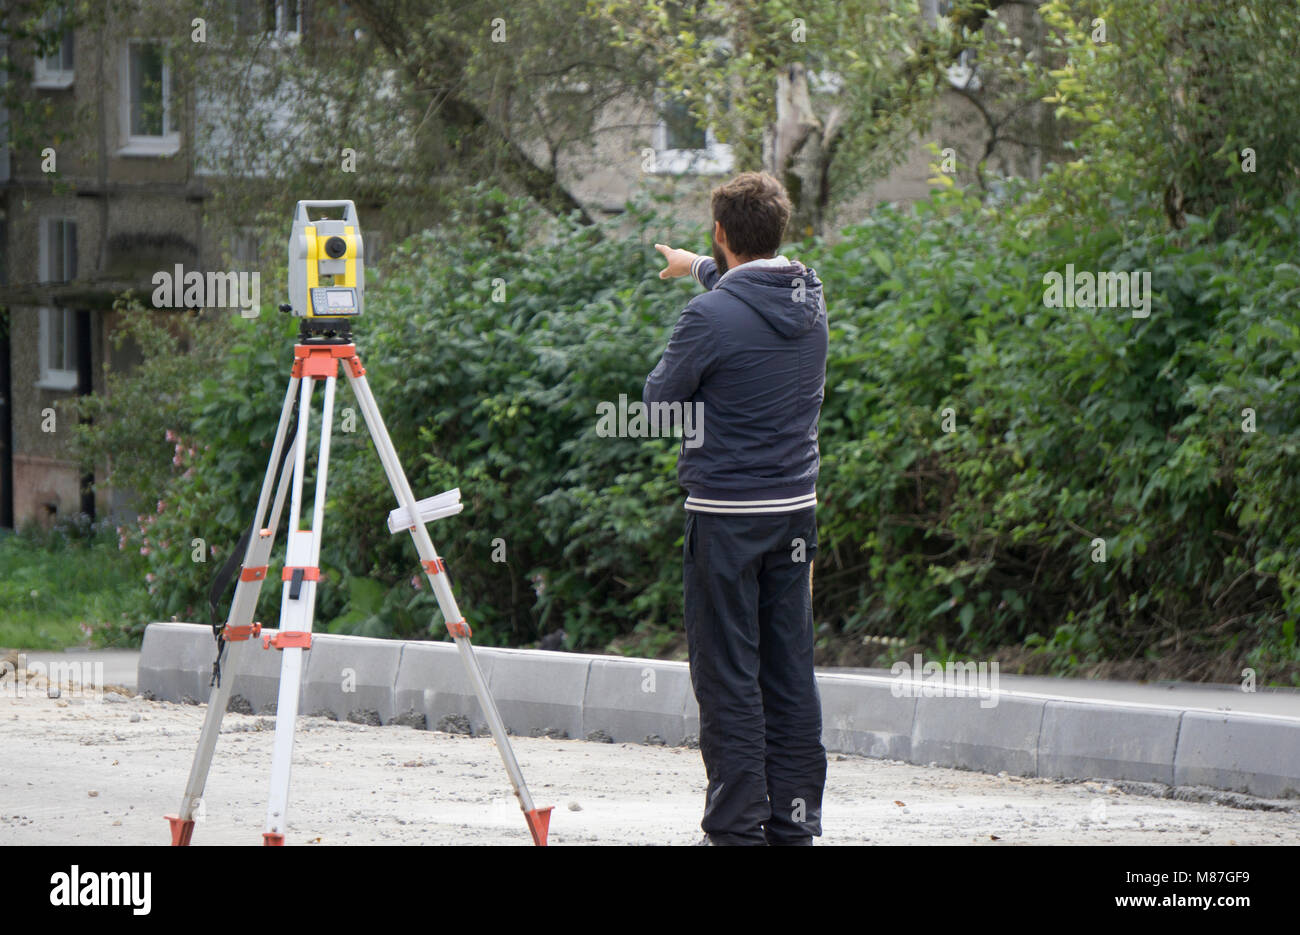 a worker stands next to the level - Stock Image